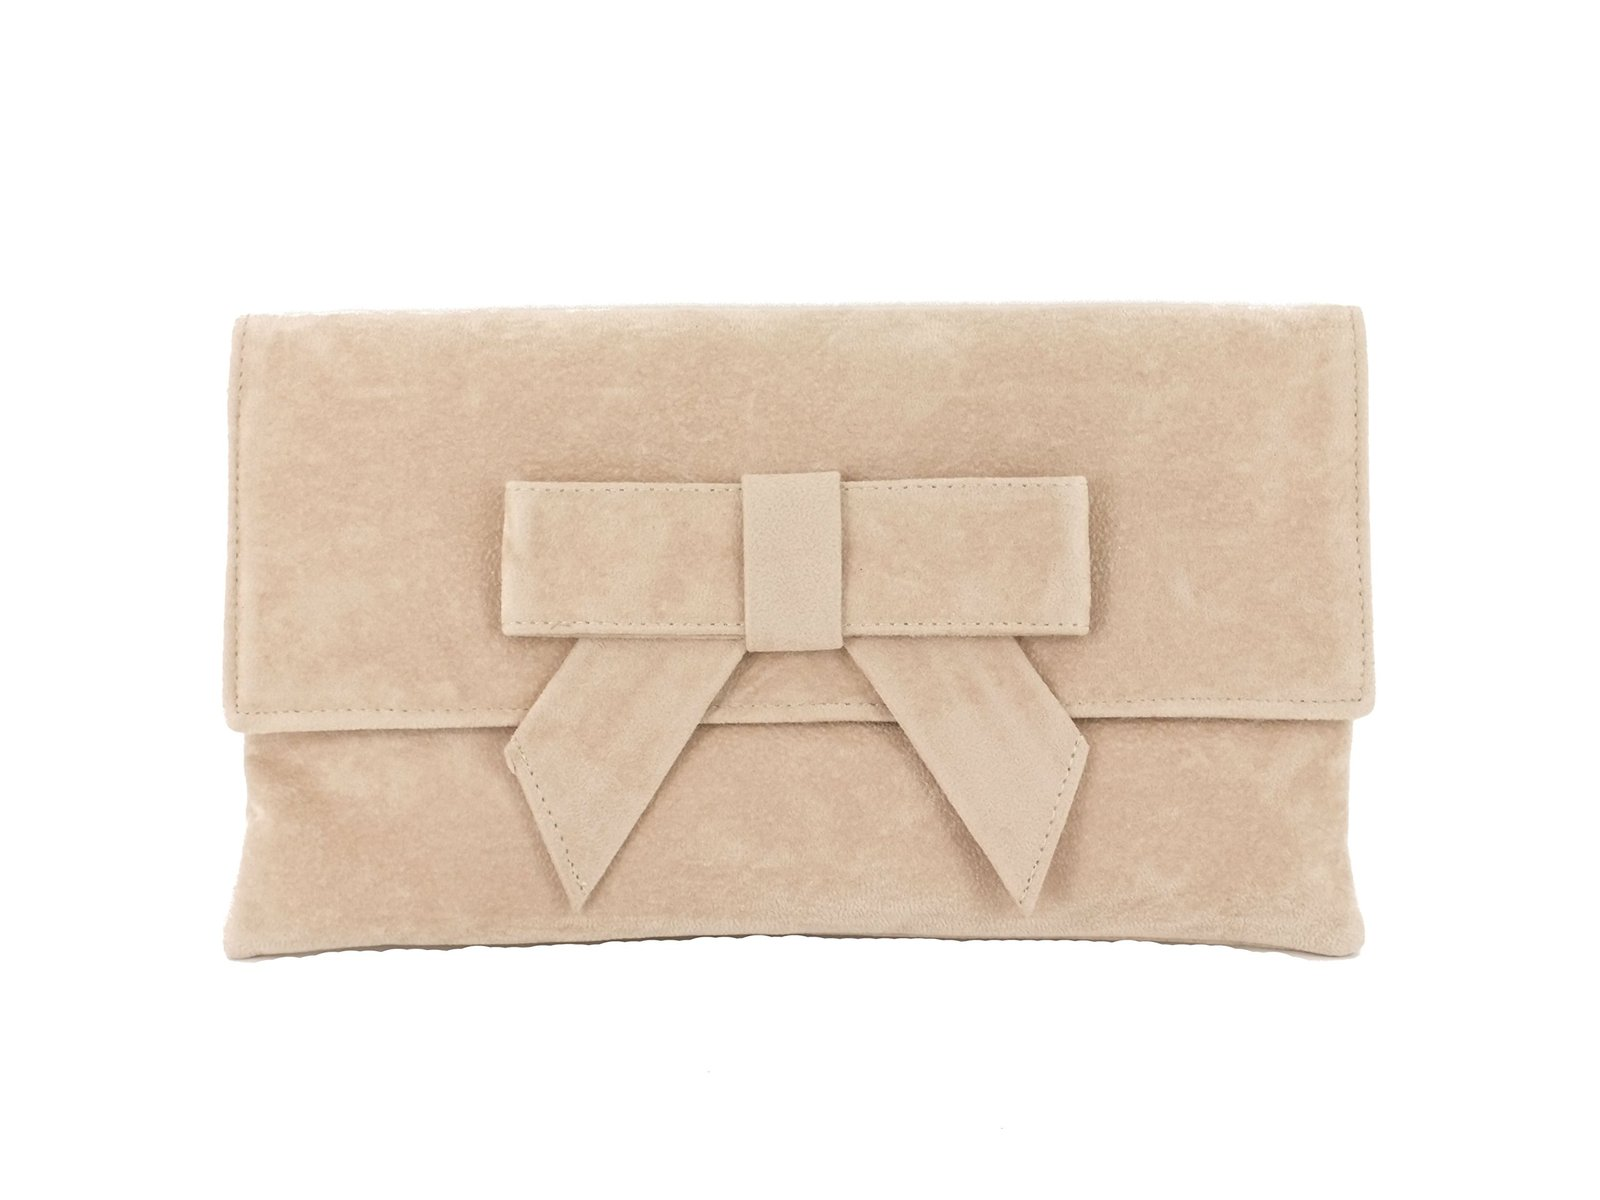 LONI Womens Cute Suede Faux Leather Clutch bag/Shoulder Bag in Nude Beige